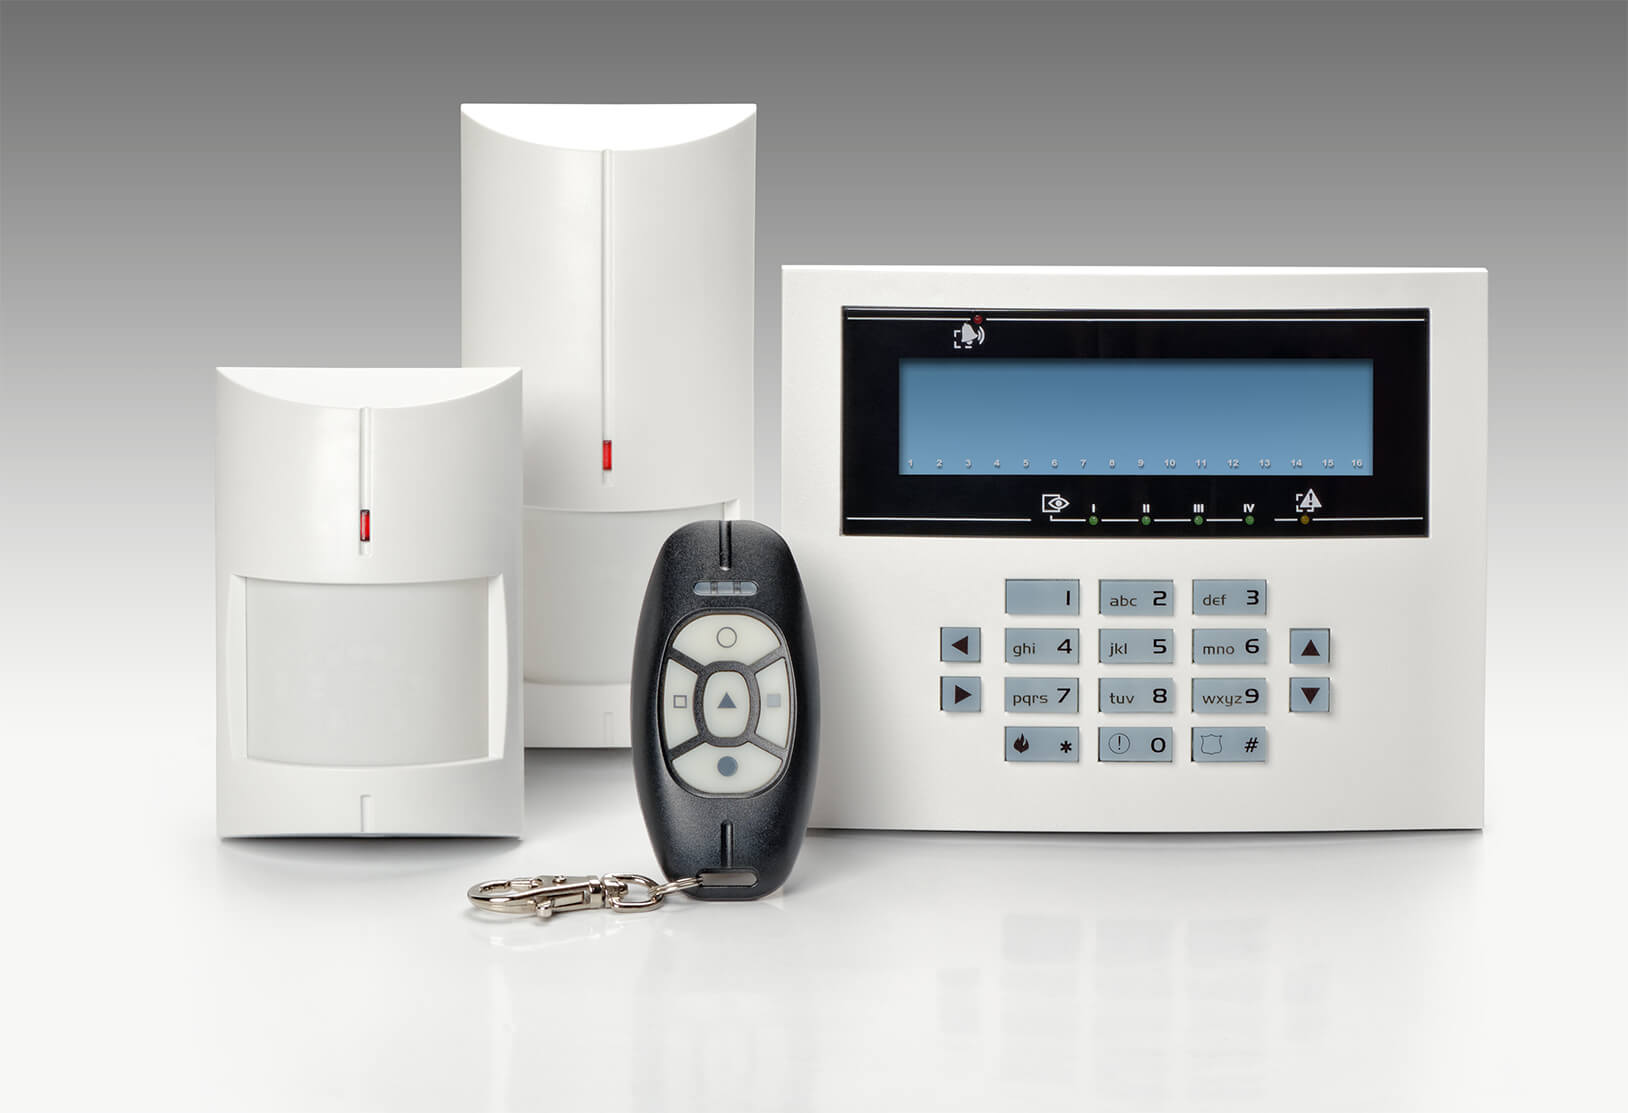 Business & Residential NACOSS Approved Burglar Alarms In Vauxhall SW8 - Local Vauxhall SW8 security company.Call 02078872244 - Dedicated to Safety & Security. Companies, shops and homes ..